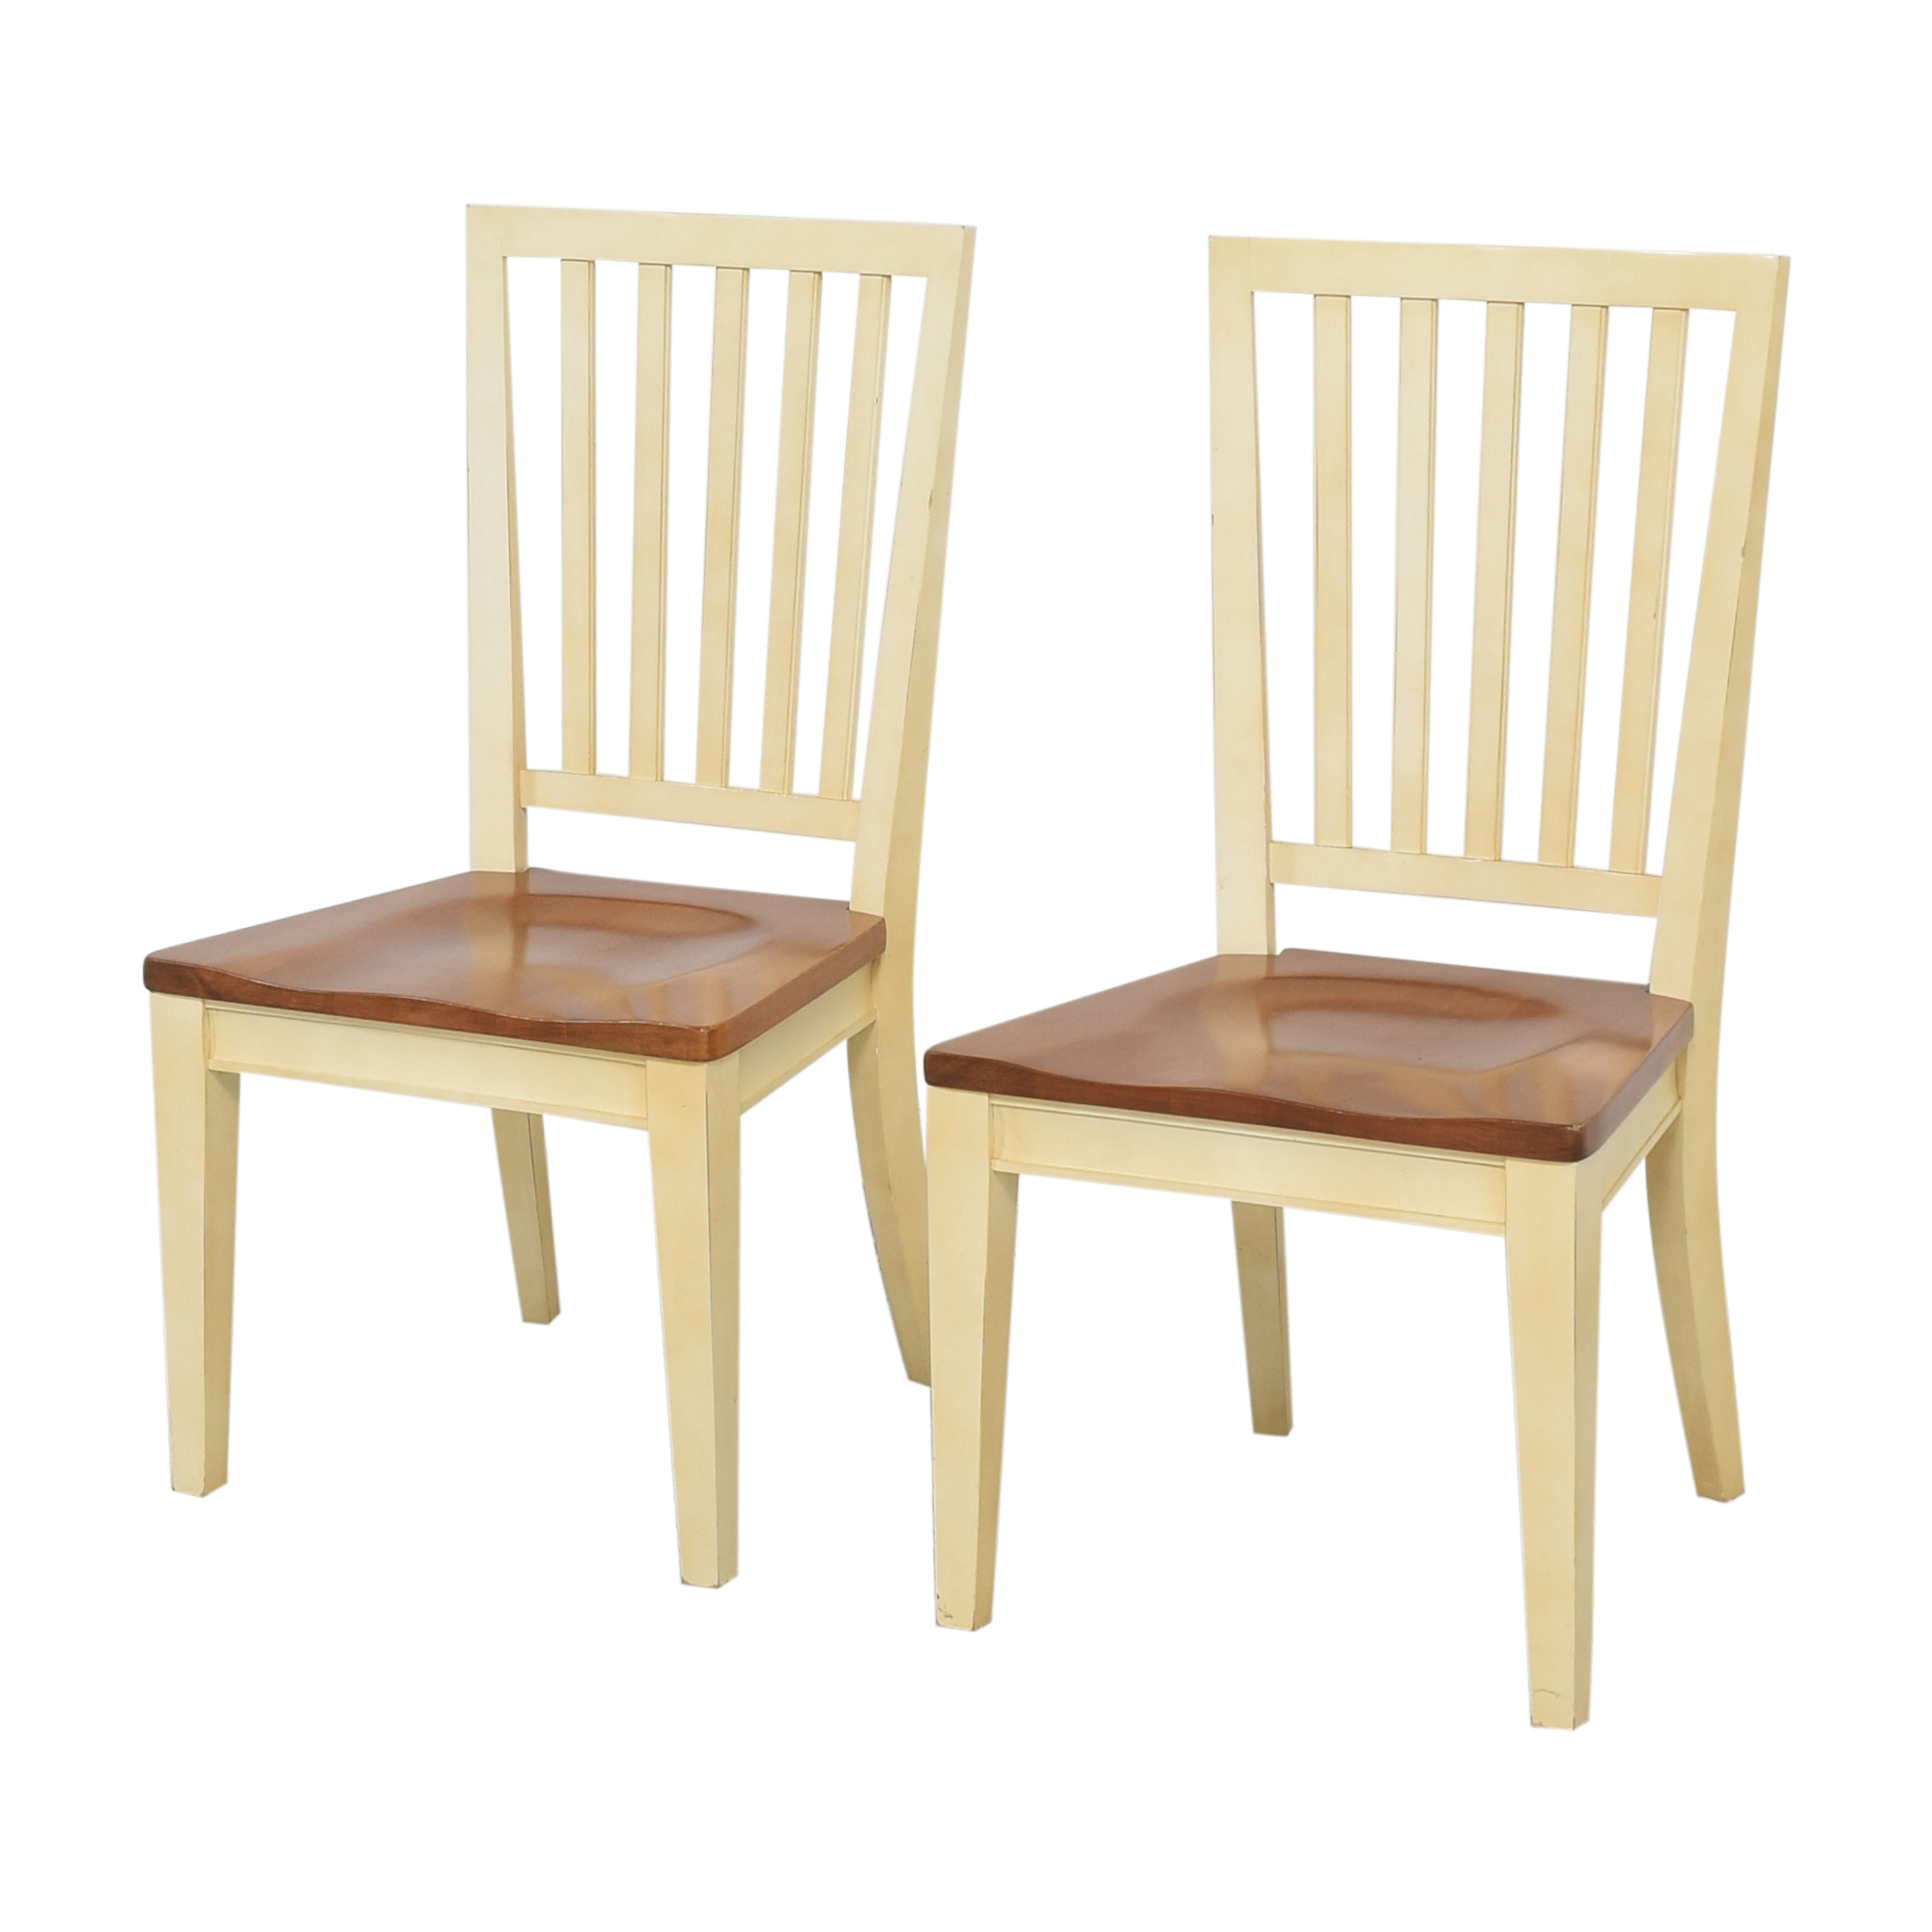 shop Ethan Allen Dining Chairs Ethan Allen Chairs